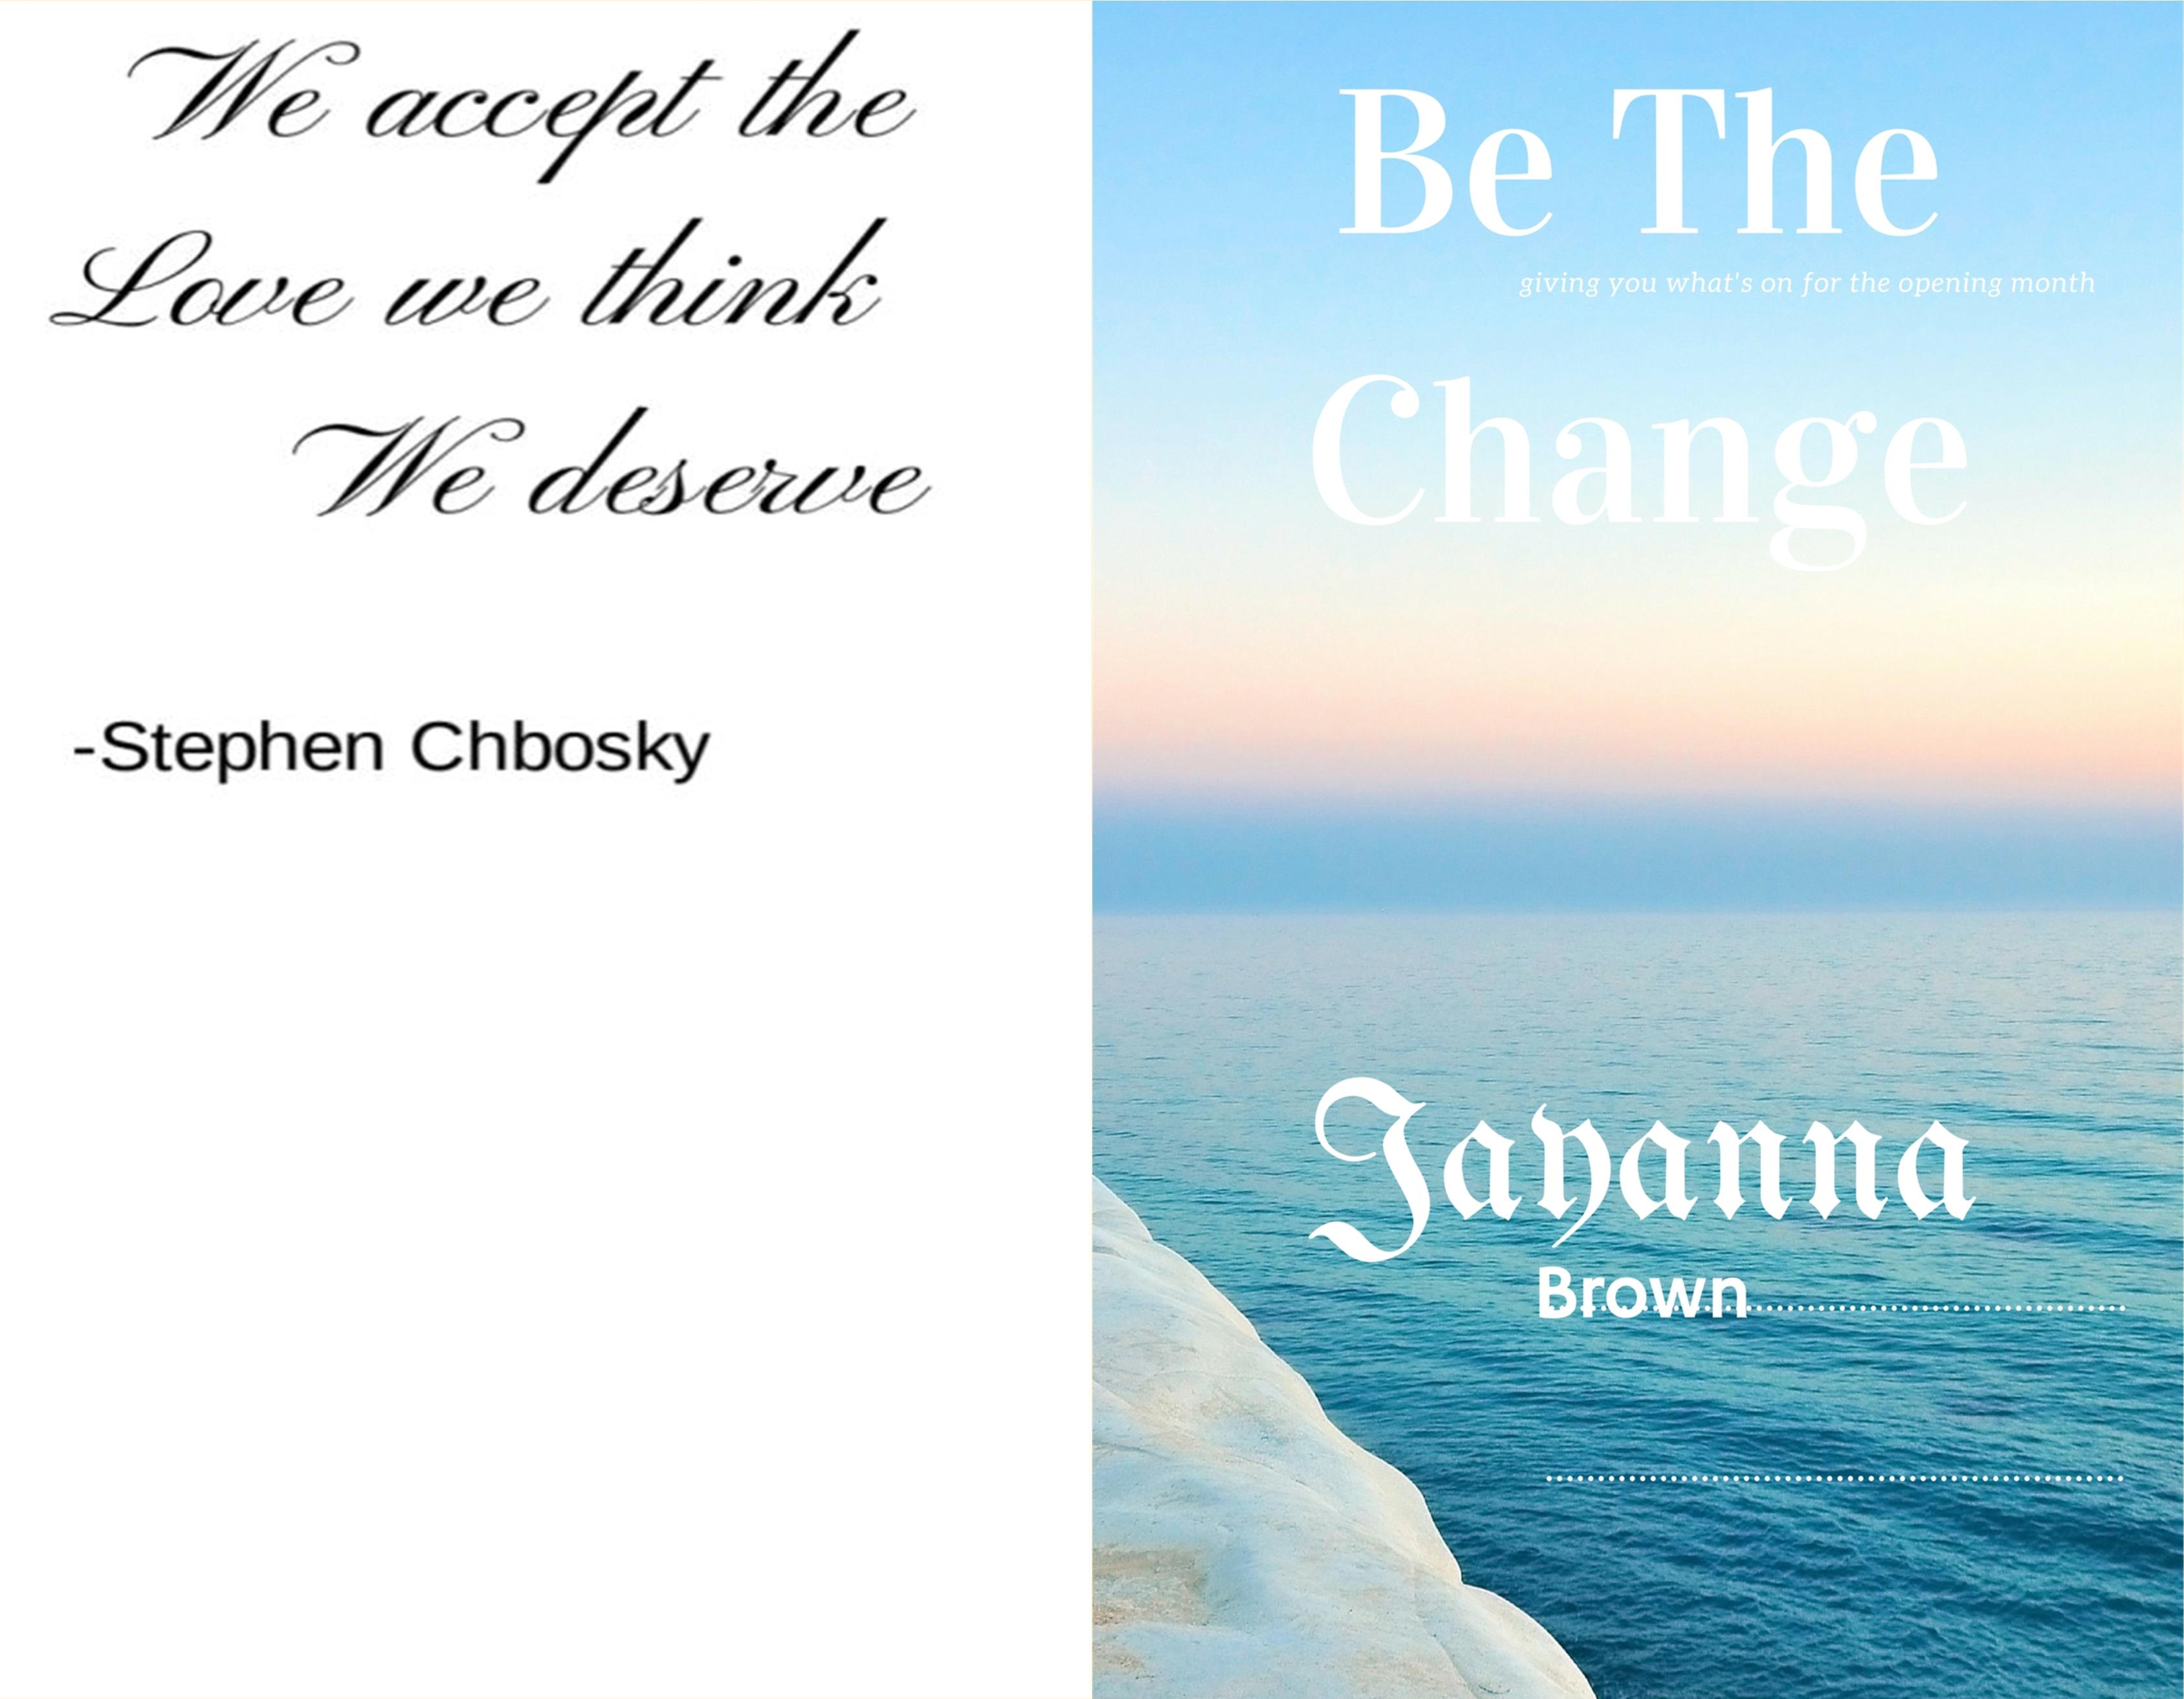 Be The Change cover image